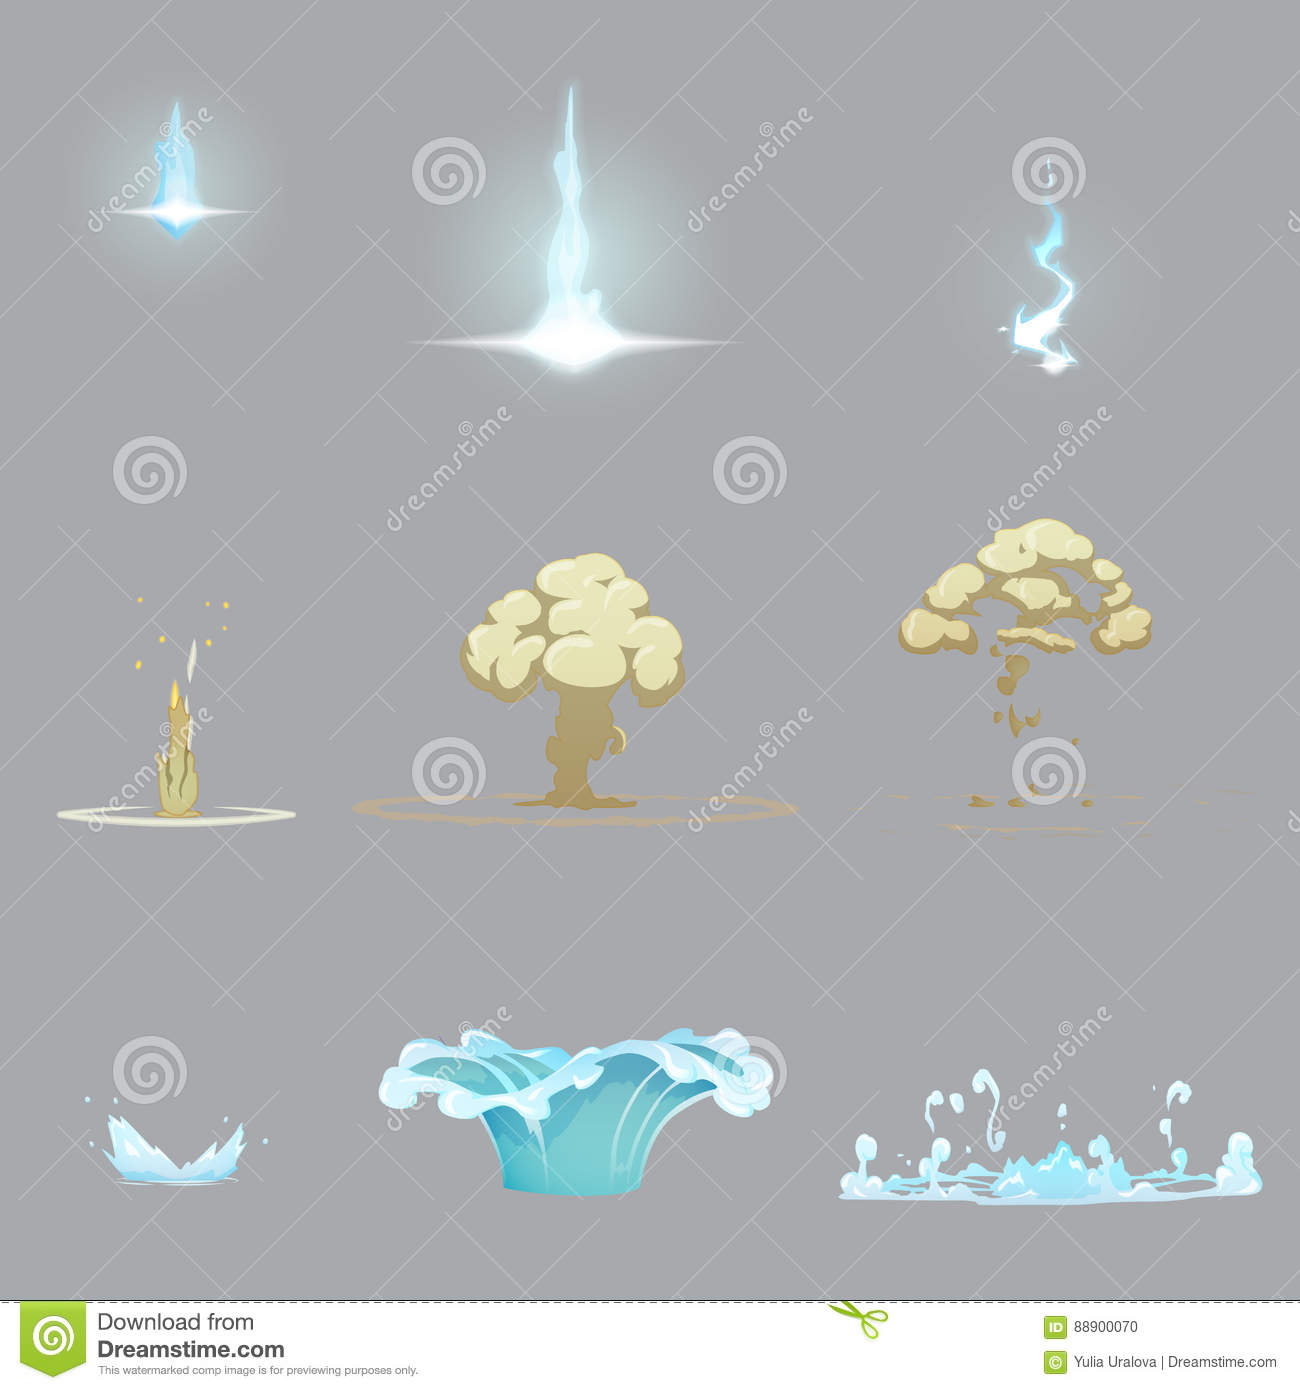 lightning strike water splash and ground explosion stock vector